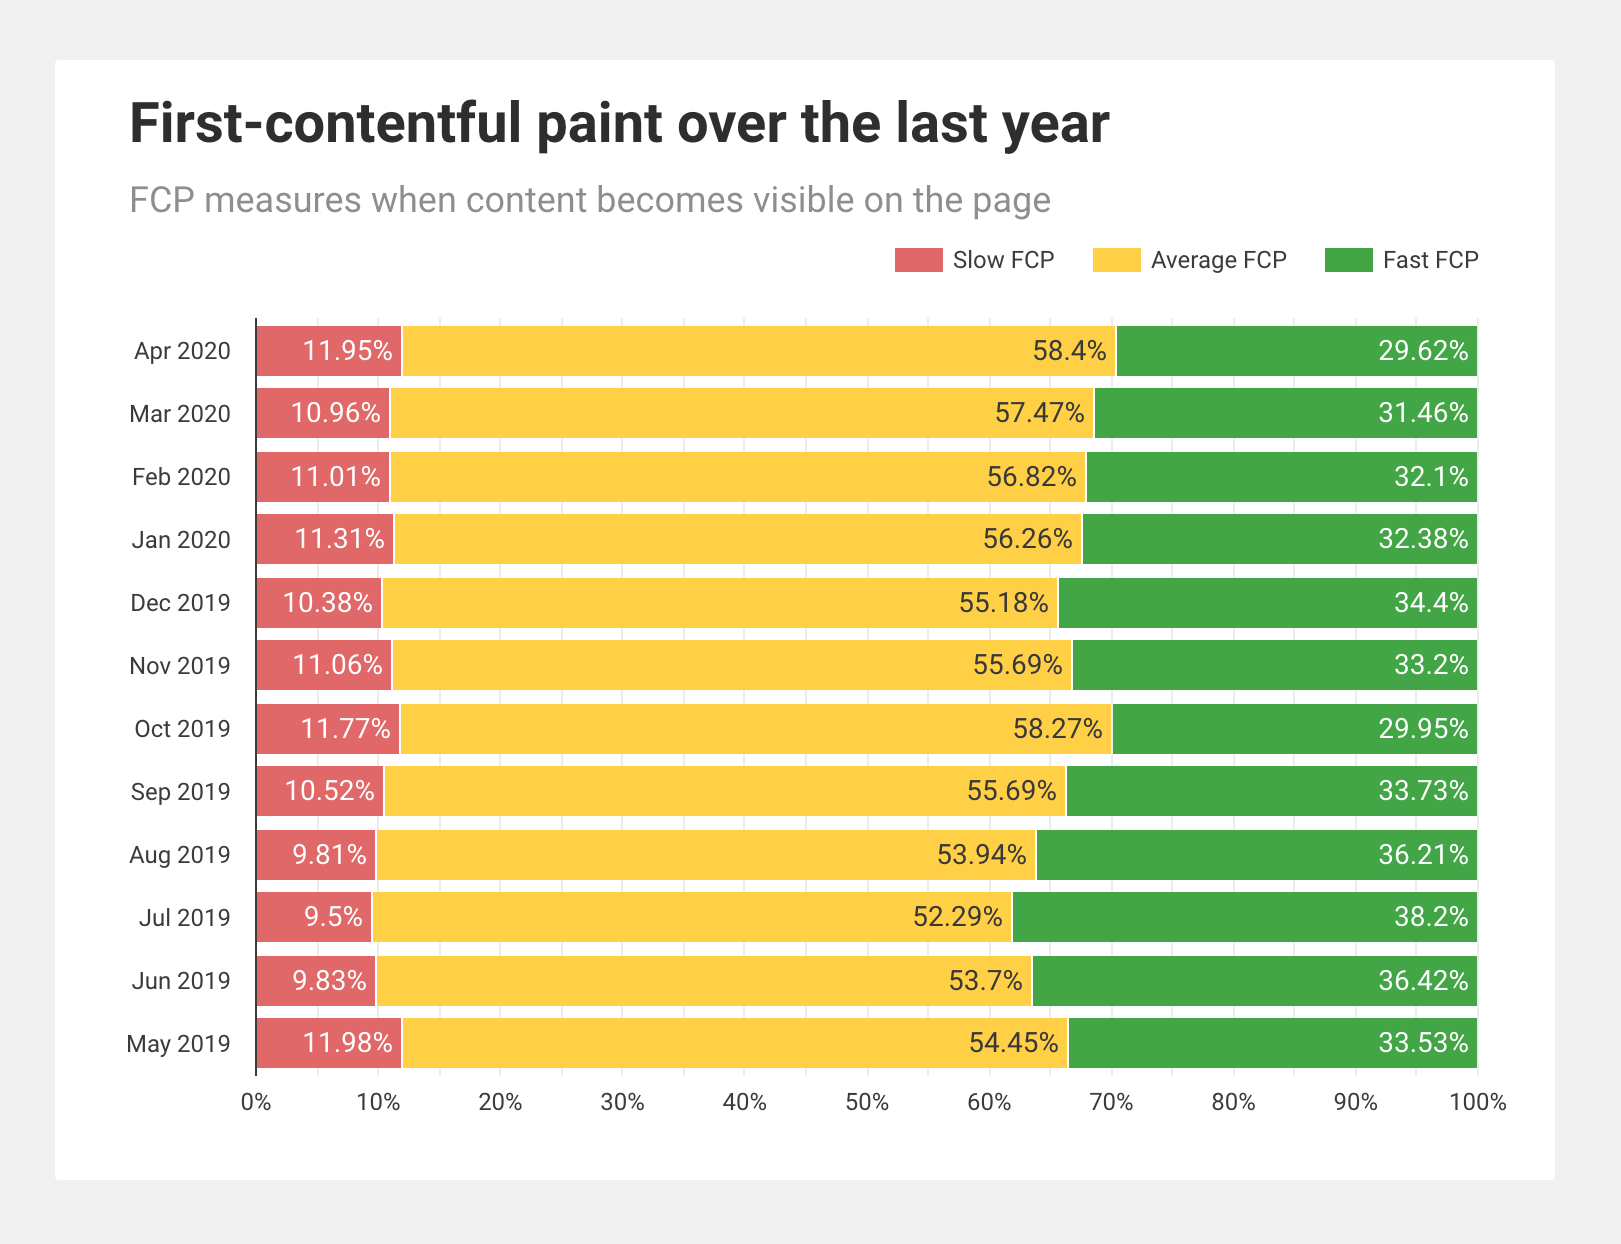 Screenshot showing the first-contentful paint over the last year from CrUX